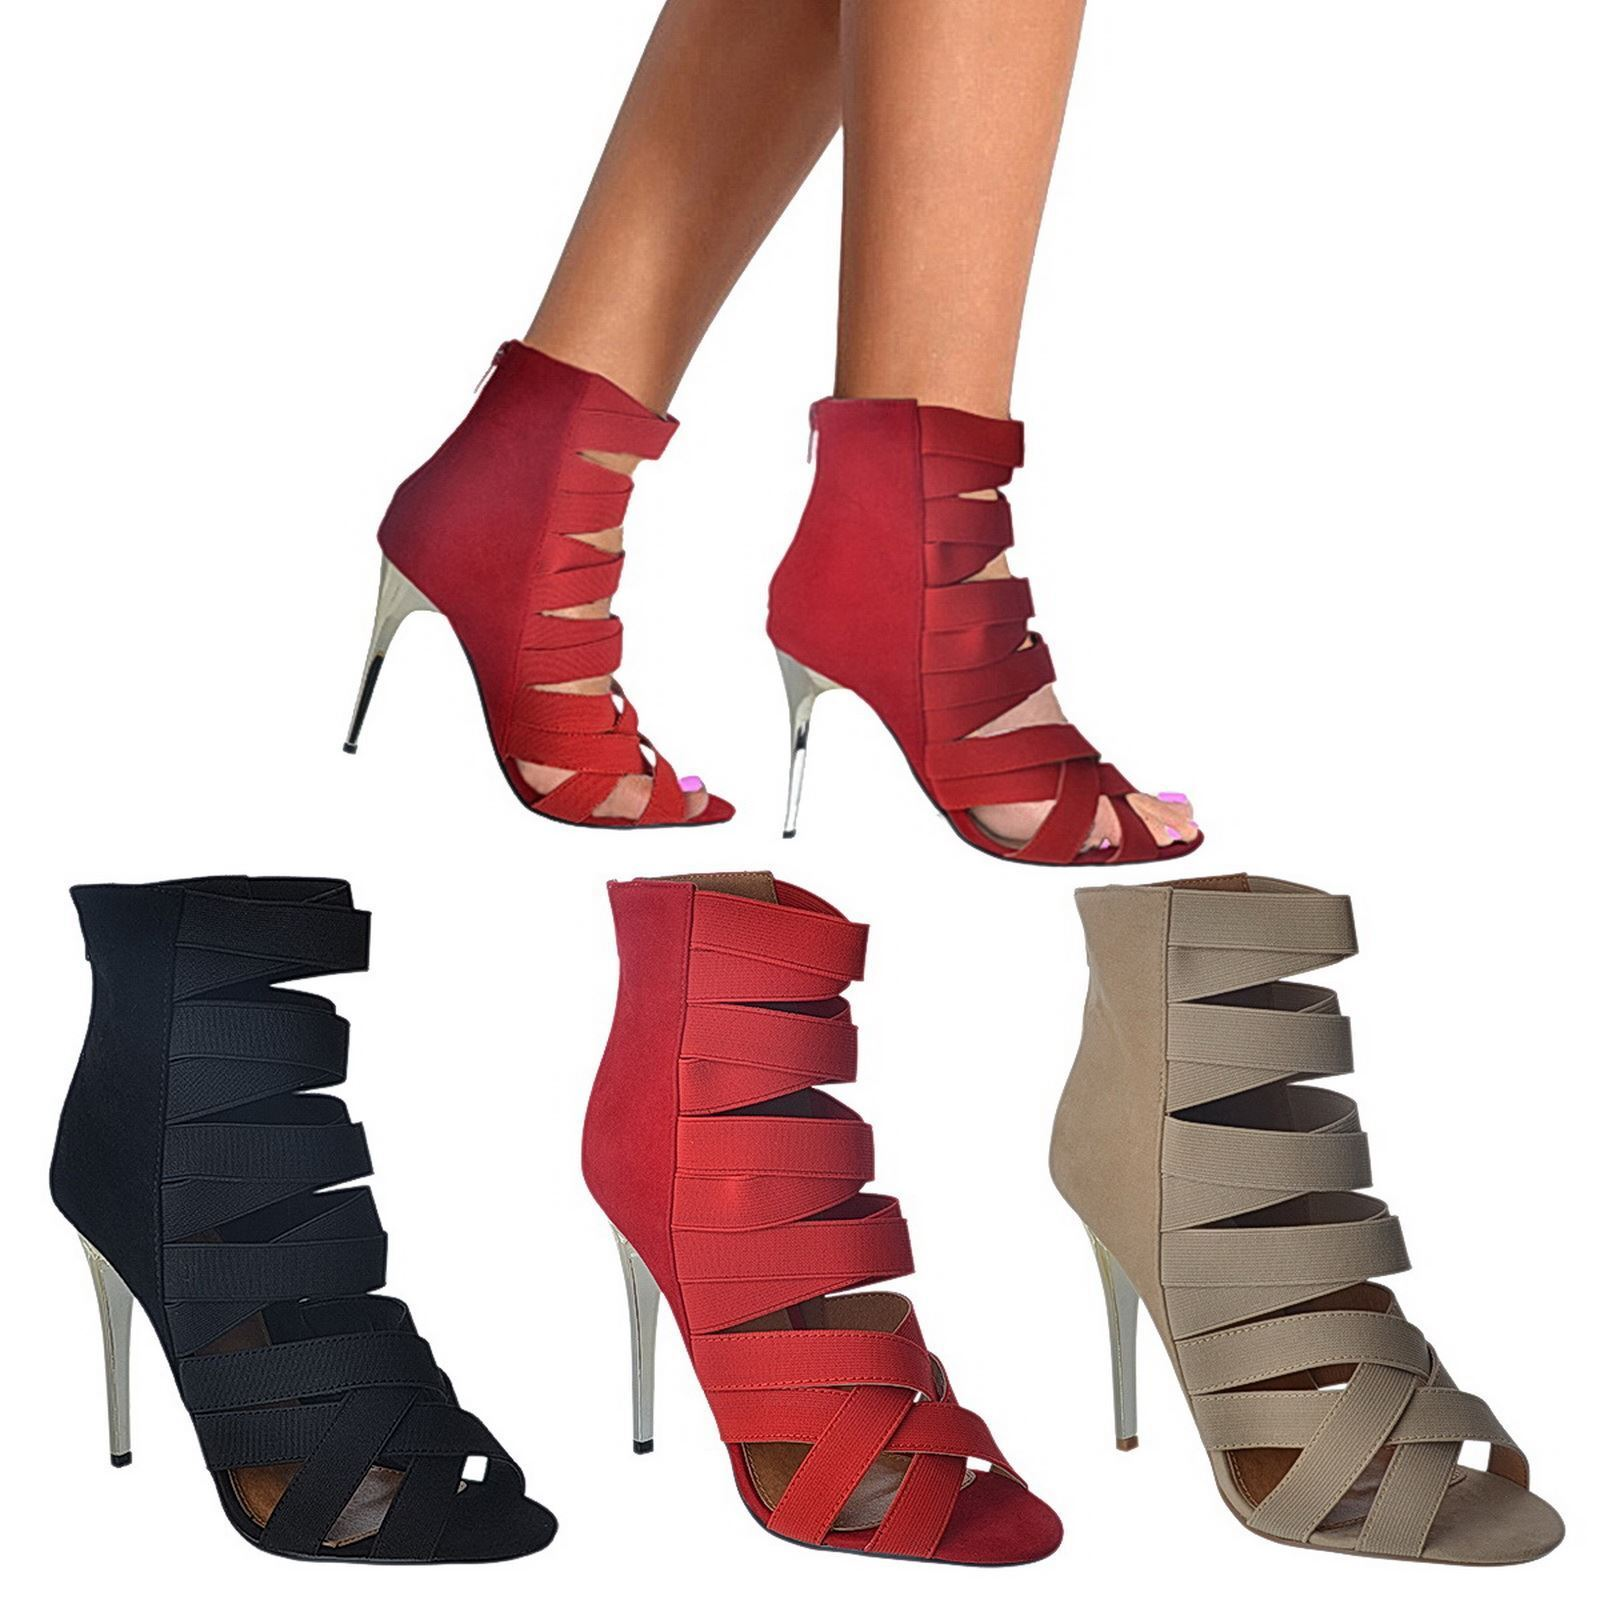 WOMENS LADIES HIGH HEEL ELASTIC STRETCH ZIP UP GLADIATOR ANKLE BOOTS SHOES SIZE